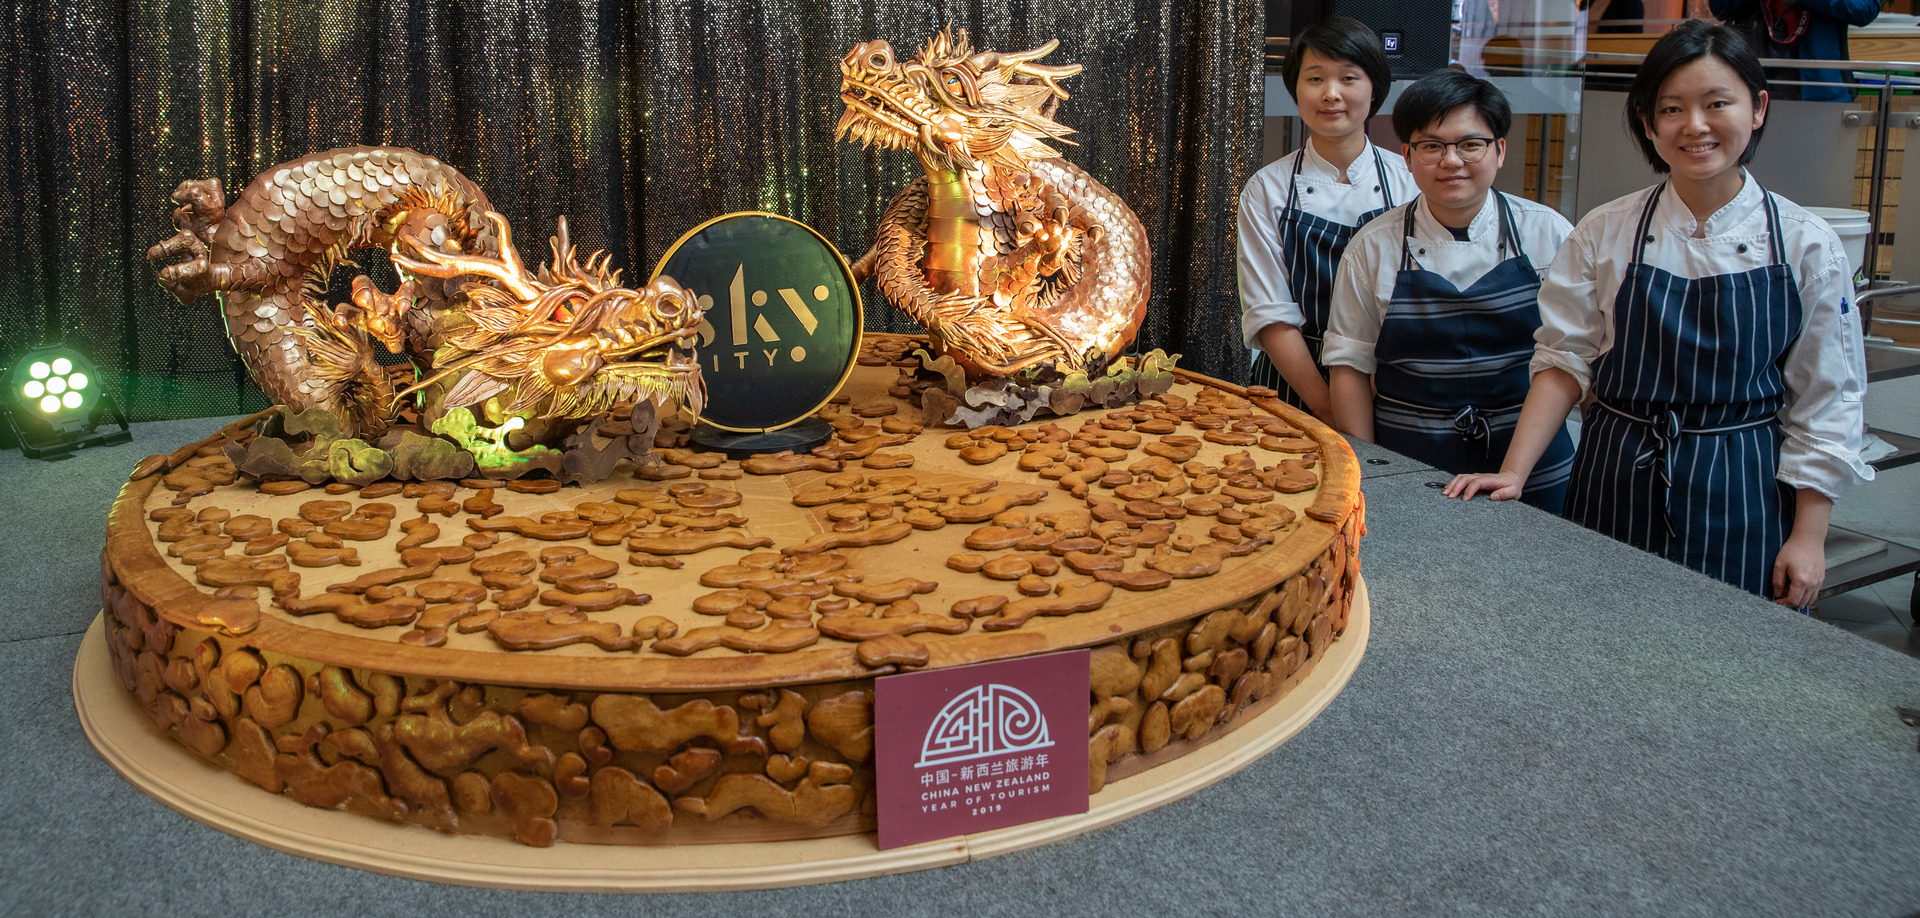 'Biggest mooncake in NZ history' to celebrate Chinese Moon Festival